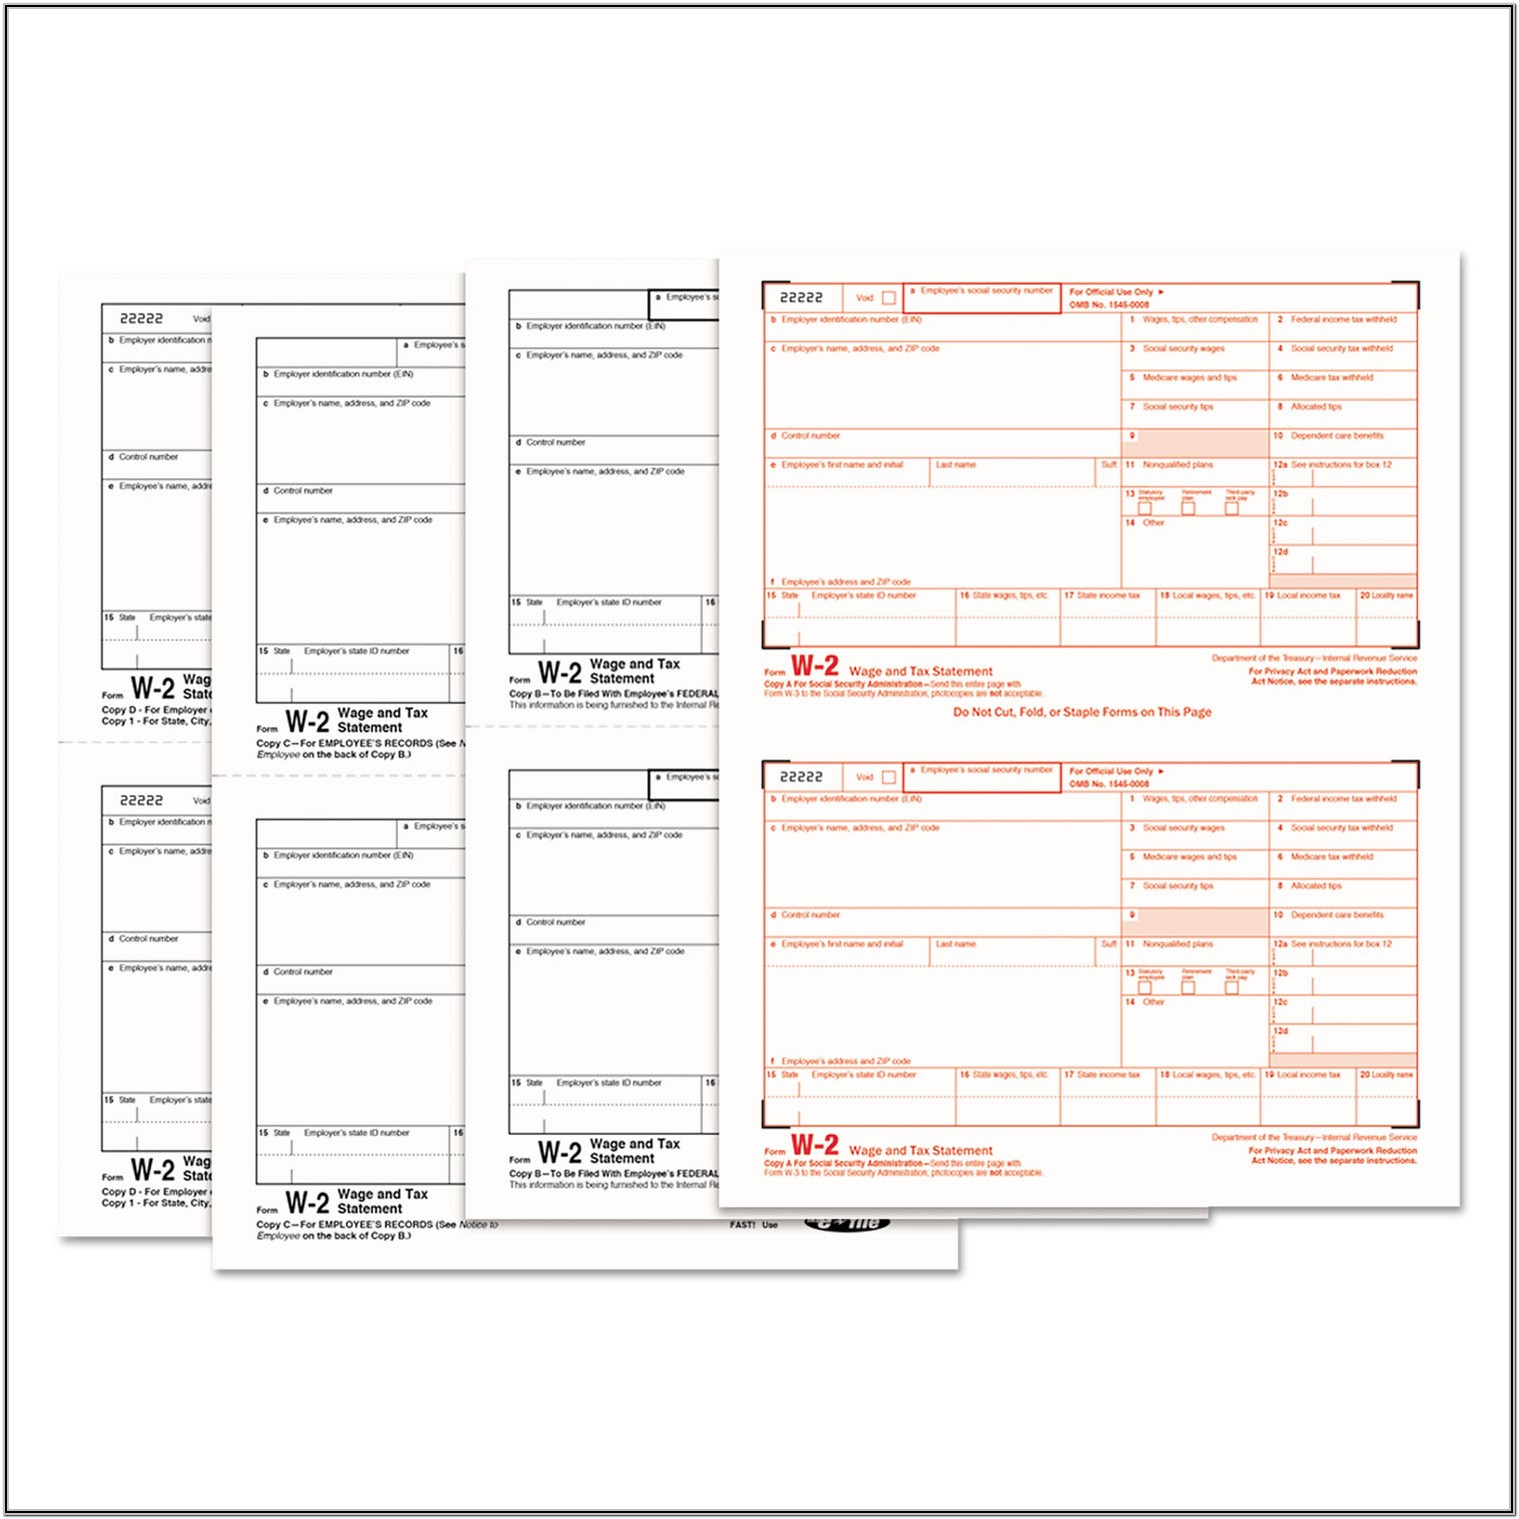 W2 Tax Return Forms